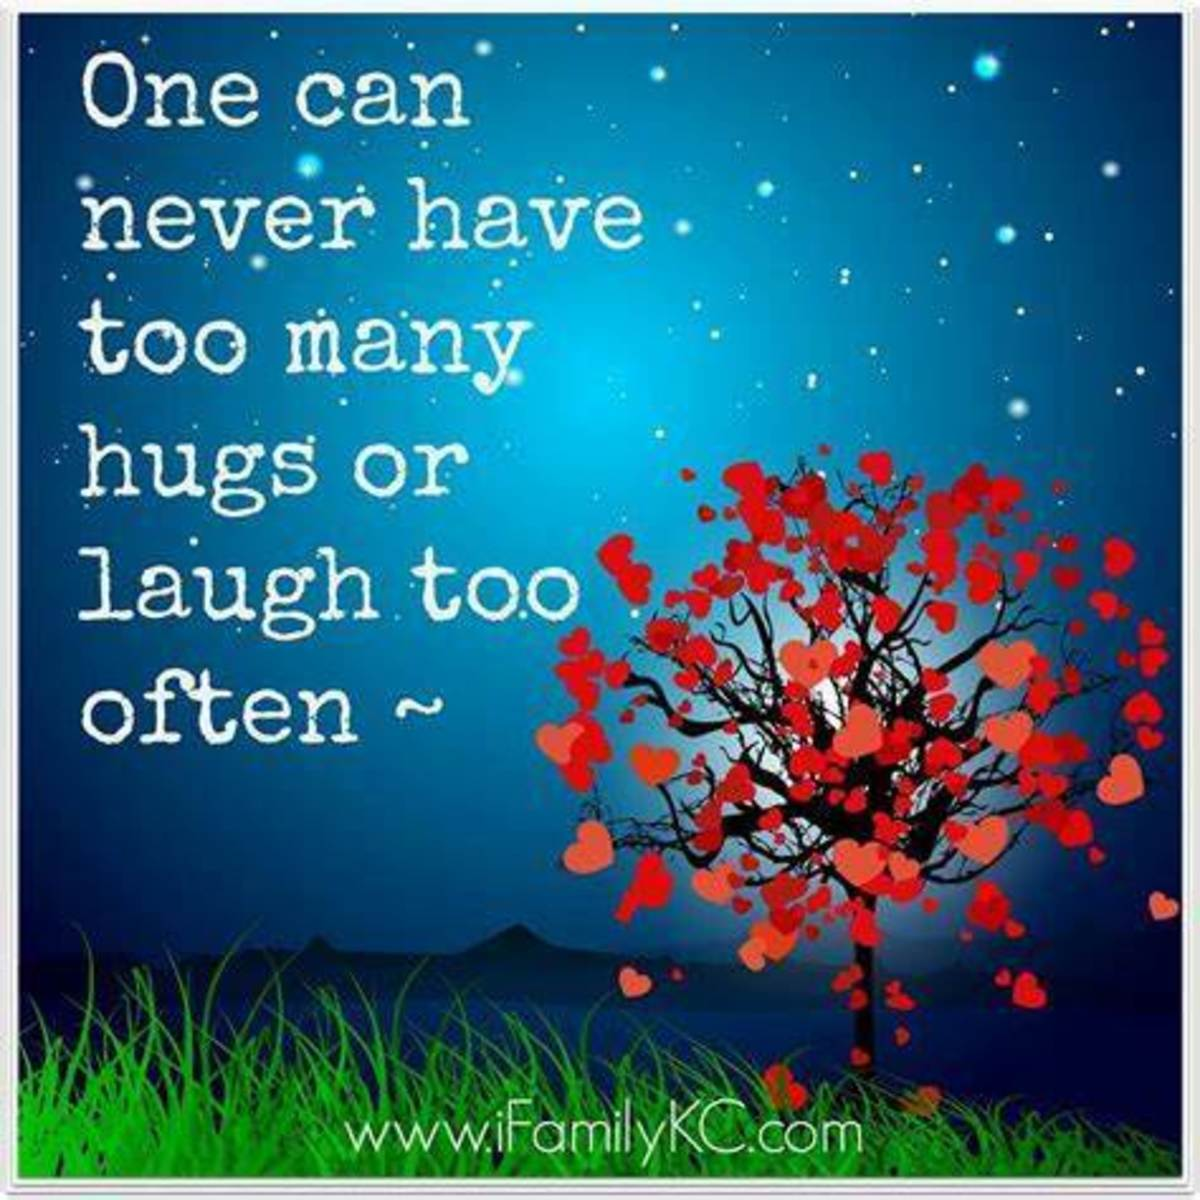 laughter-one-of-my-saviours-inspired-by-brenda-arledge